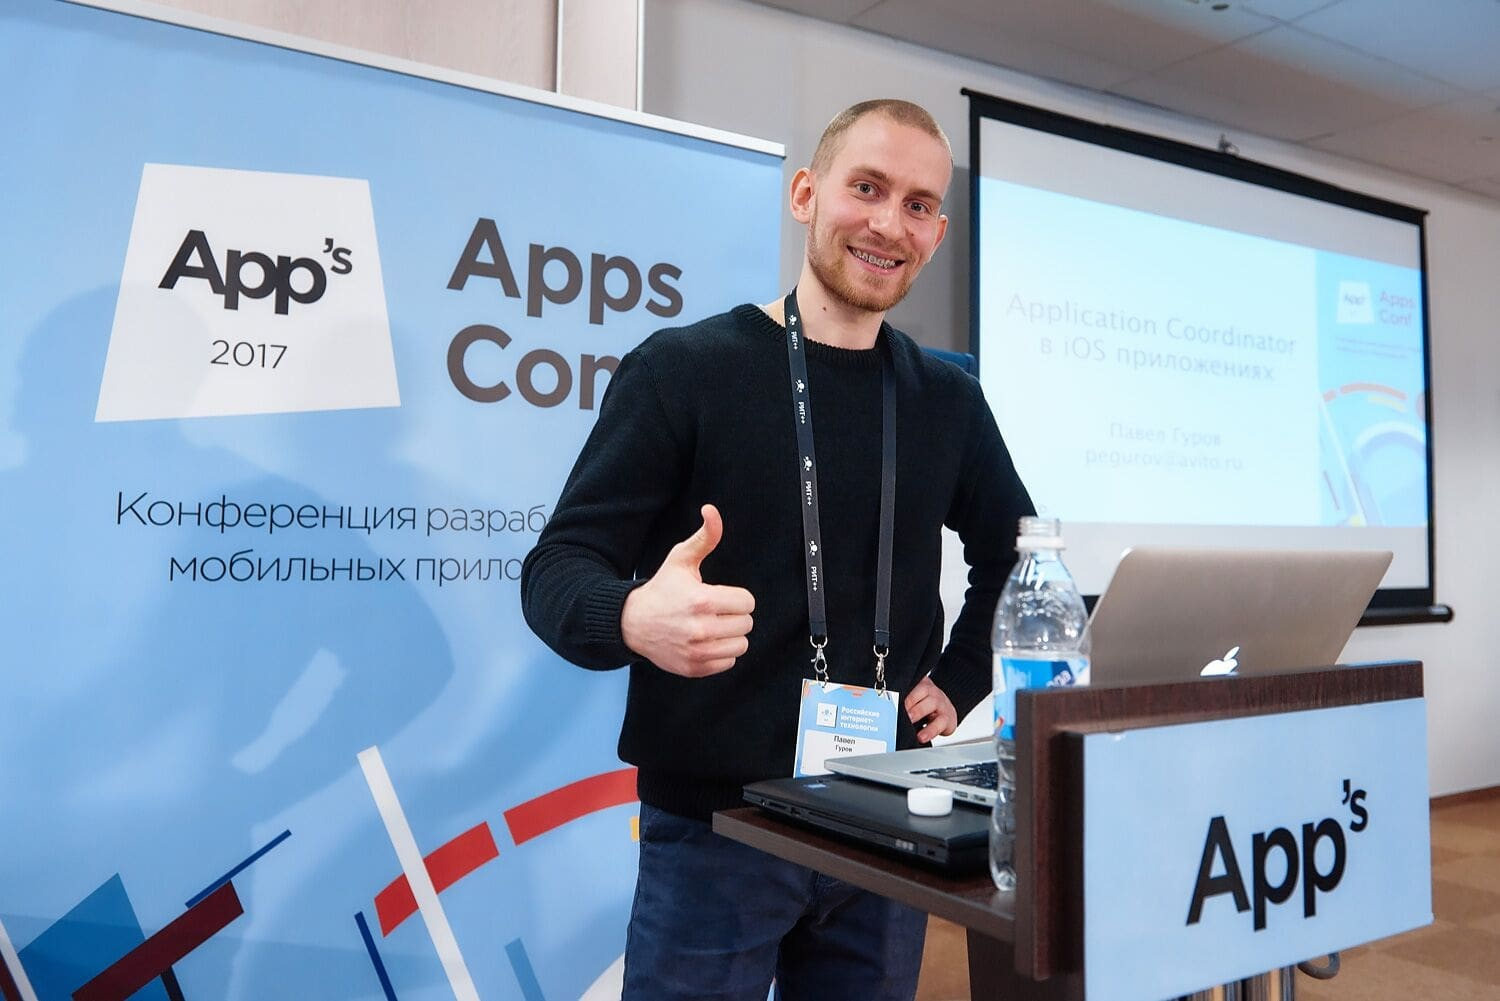 Application Coordinator в iOS приложениях